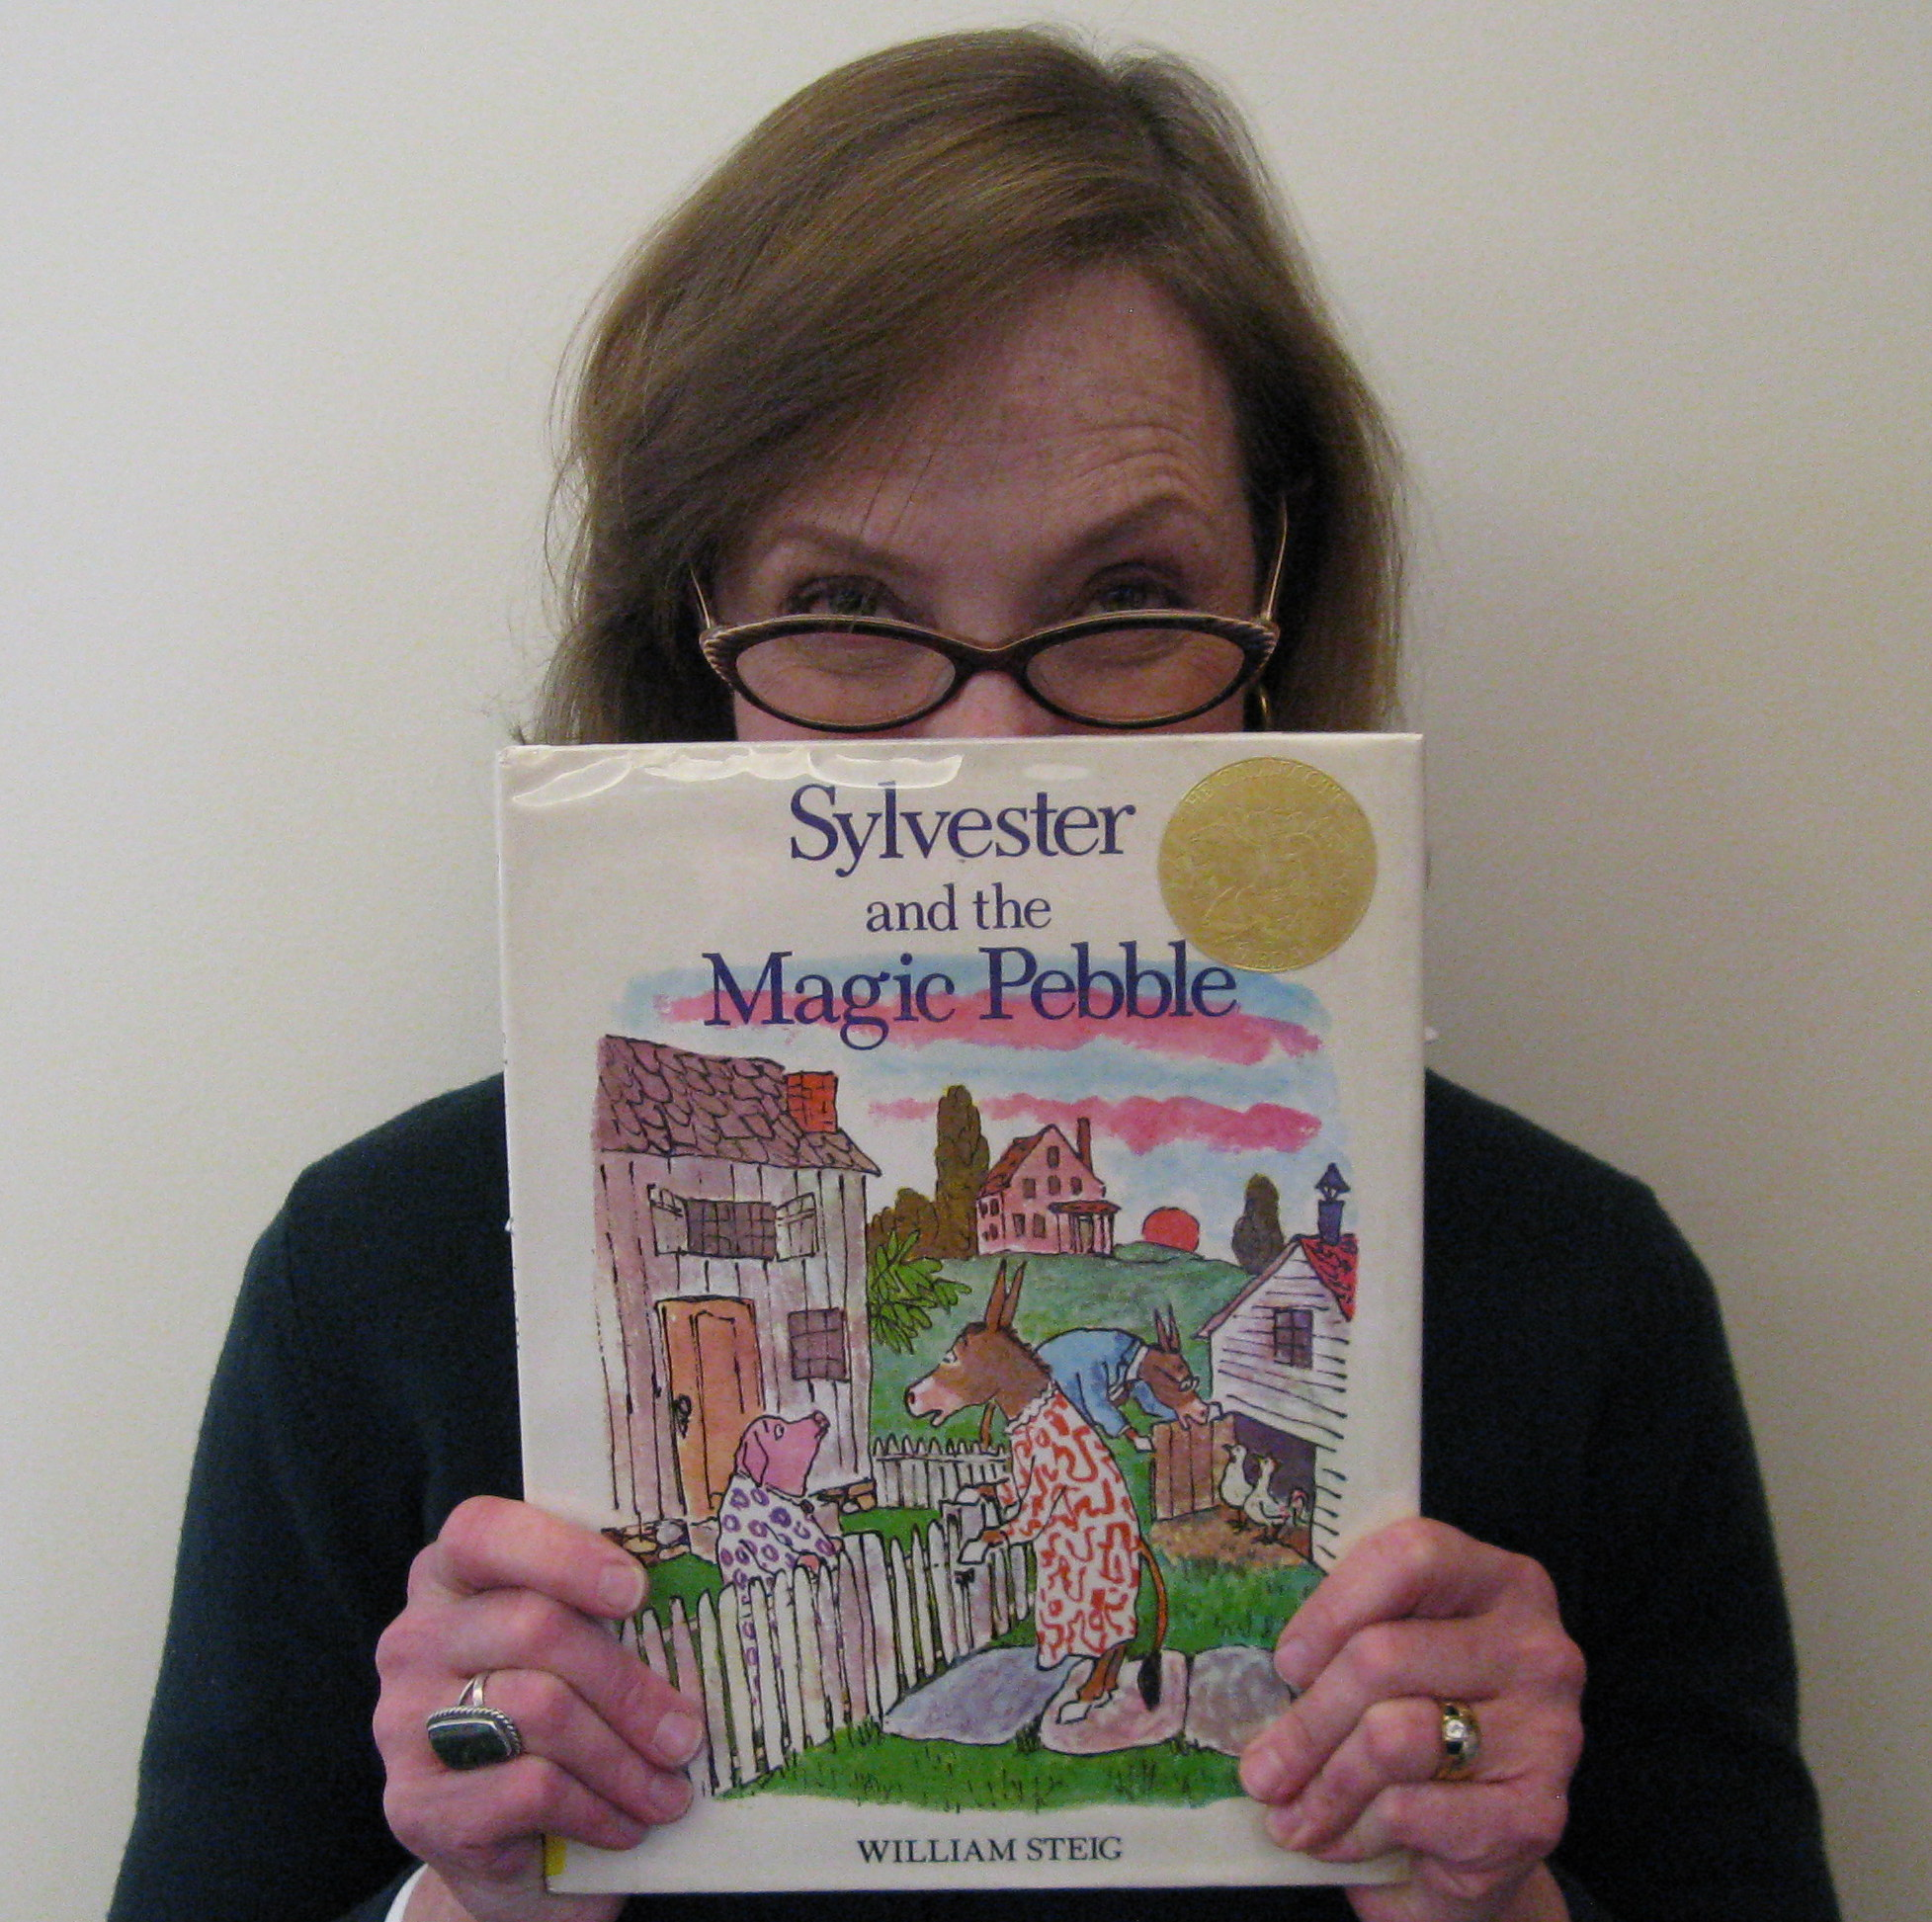 Photo of Julie holding the book Sylvester and the Magic Pebble